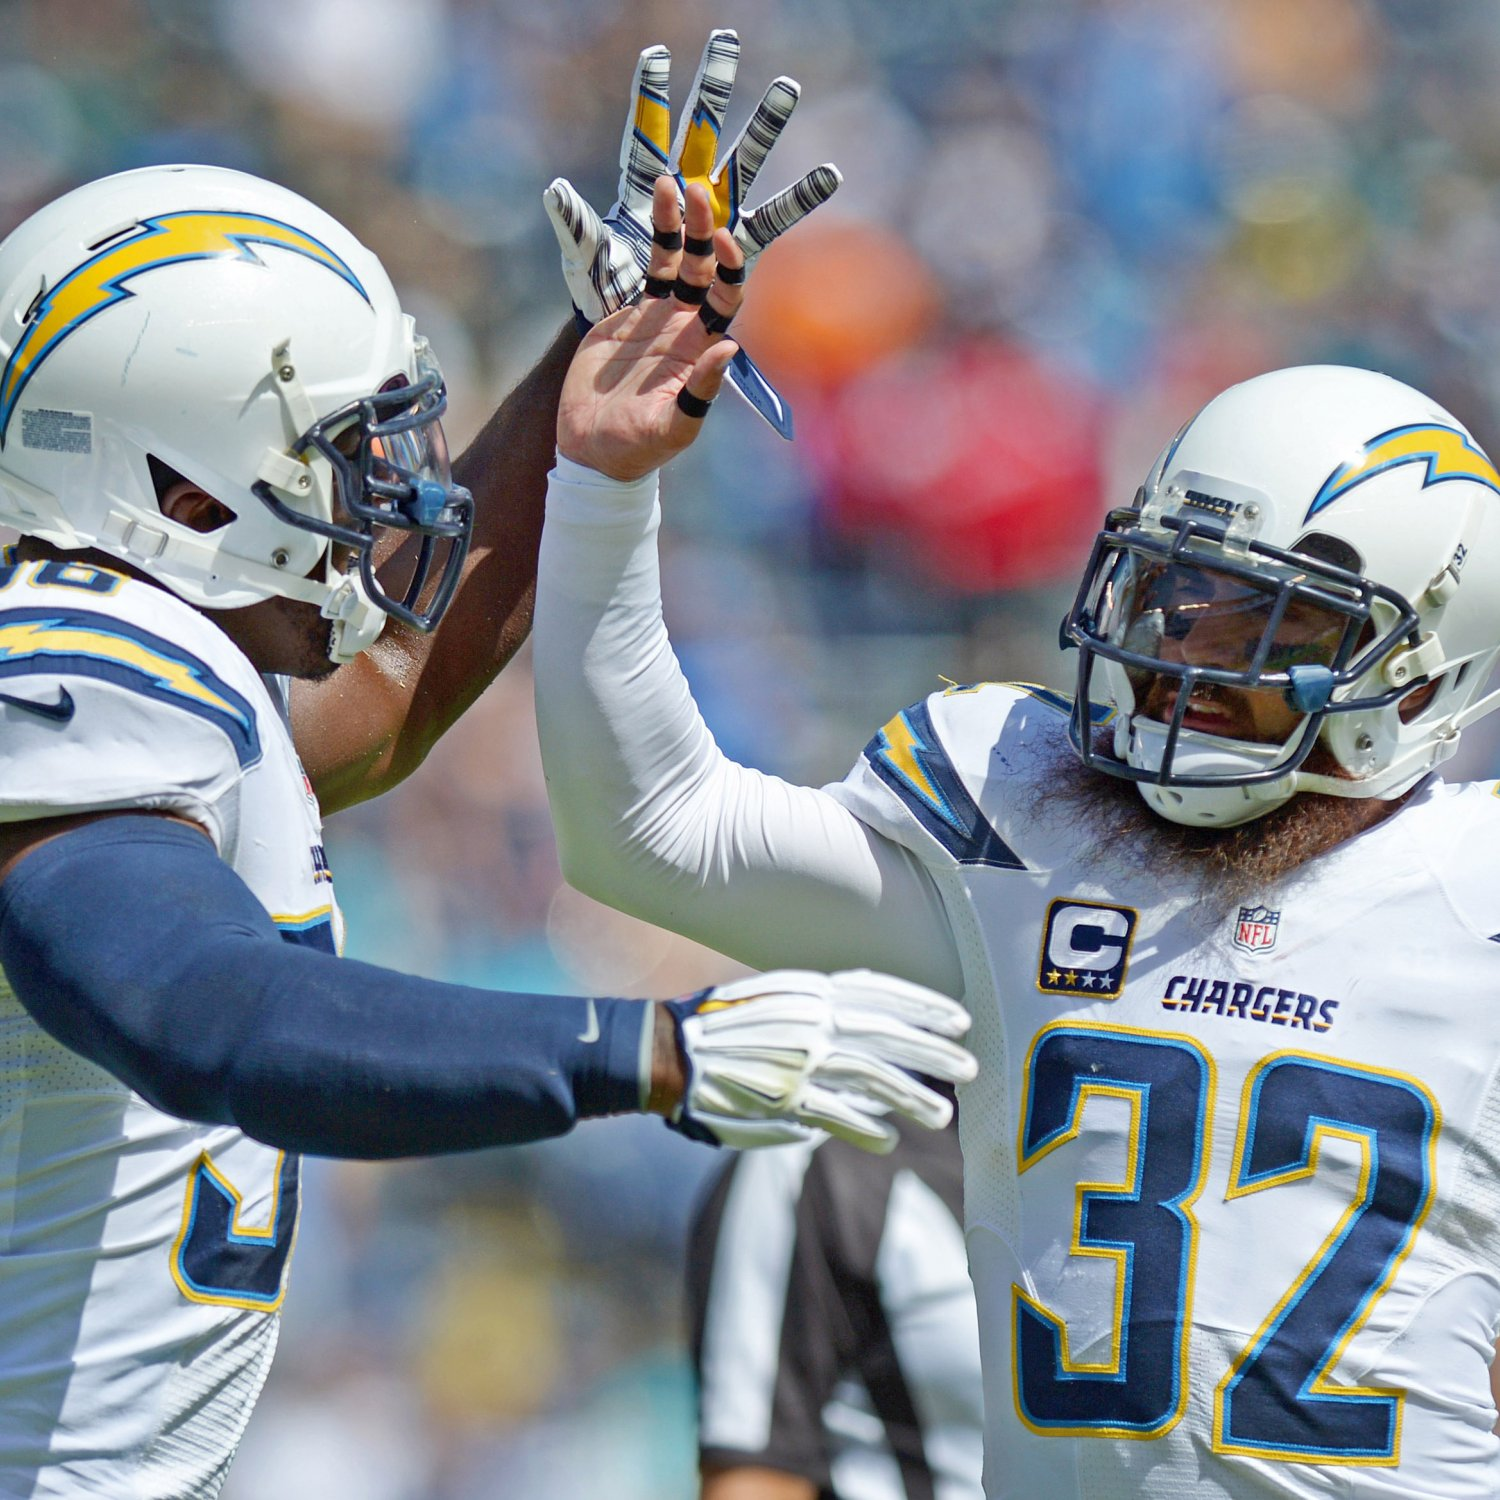 San Diego Chargers Bleacher Report: Eric Weddle Leading Stunning San Diego Chargers Defensive